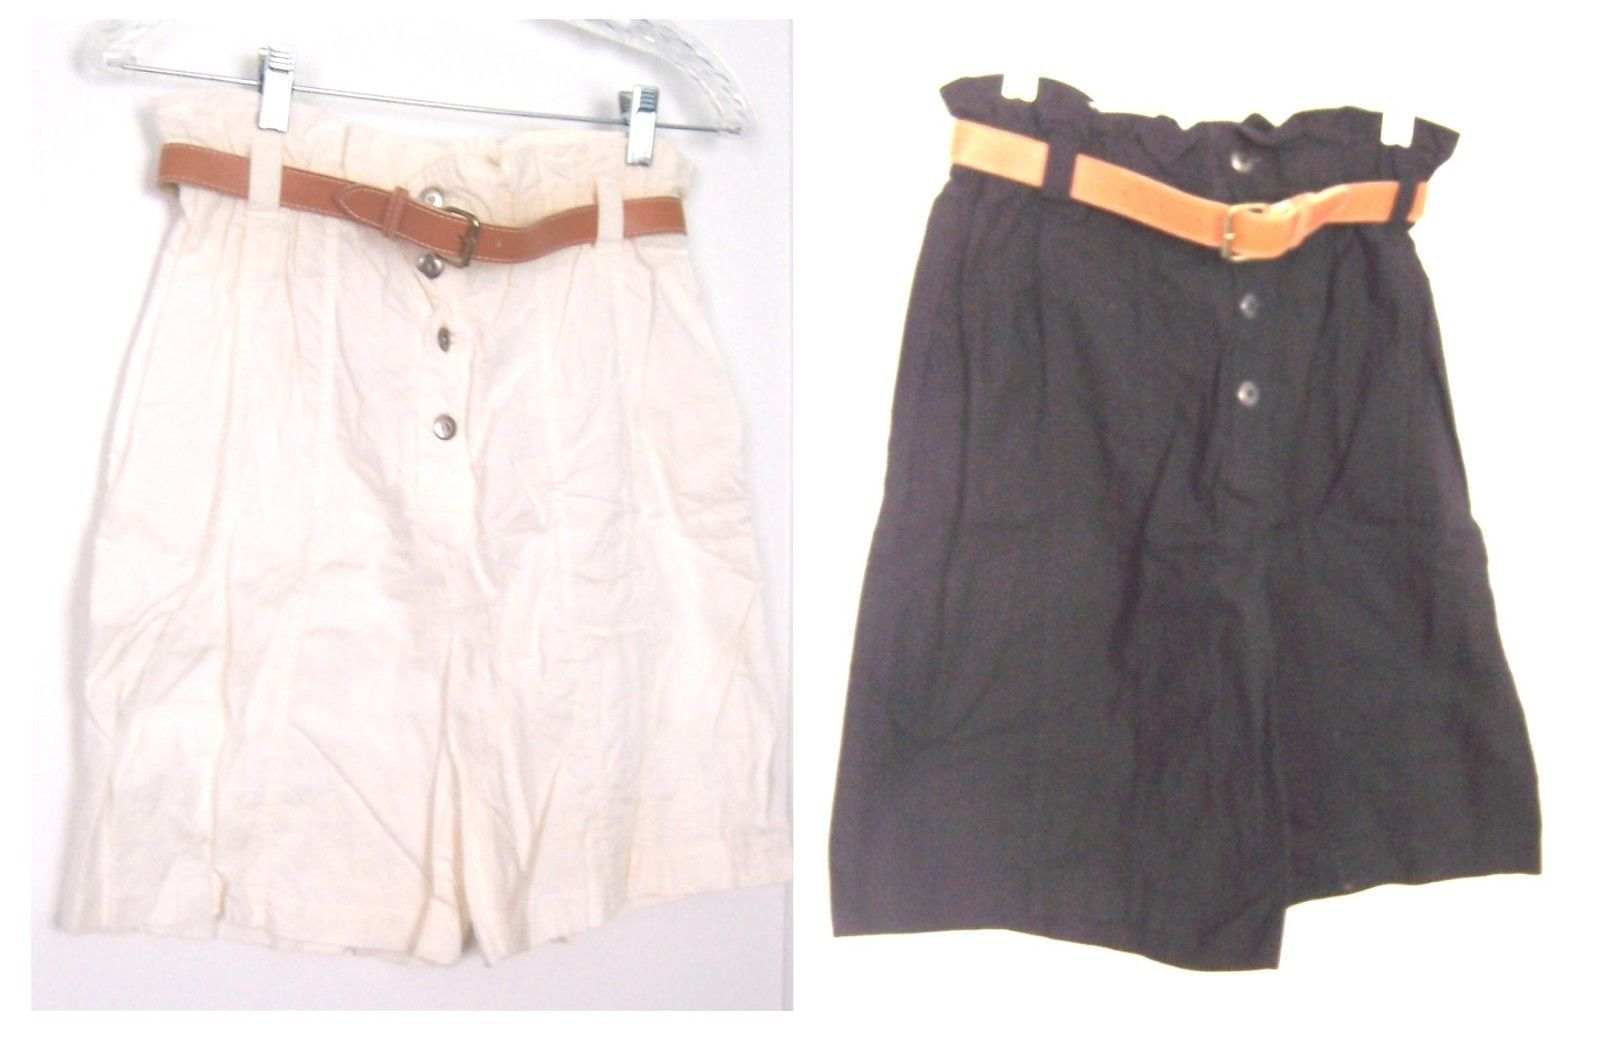 Primary image for Sz 5/6,7/8,9/10 - Tarazzia 100% Cotton Shorts w/Belt in White or Black